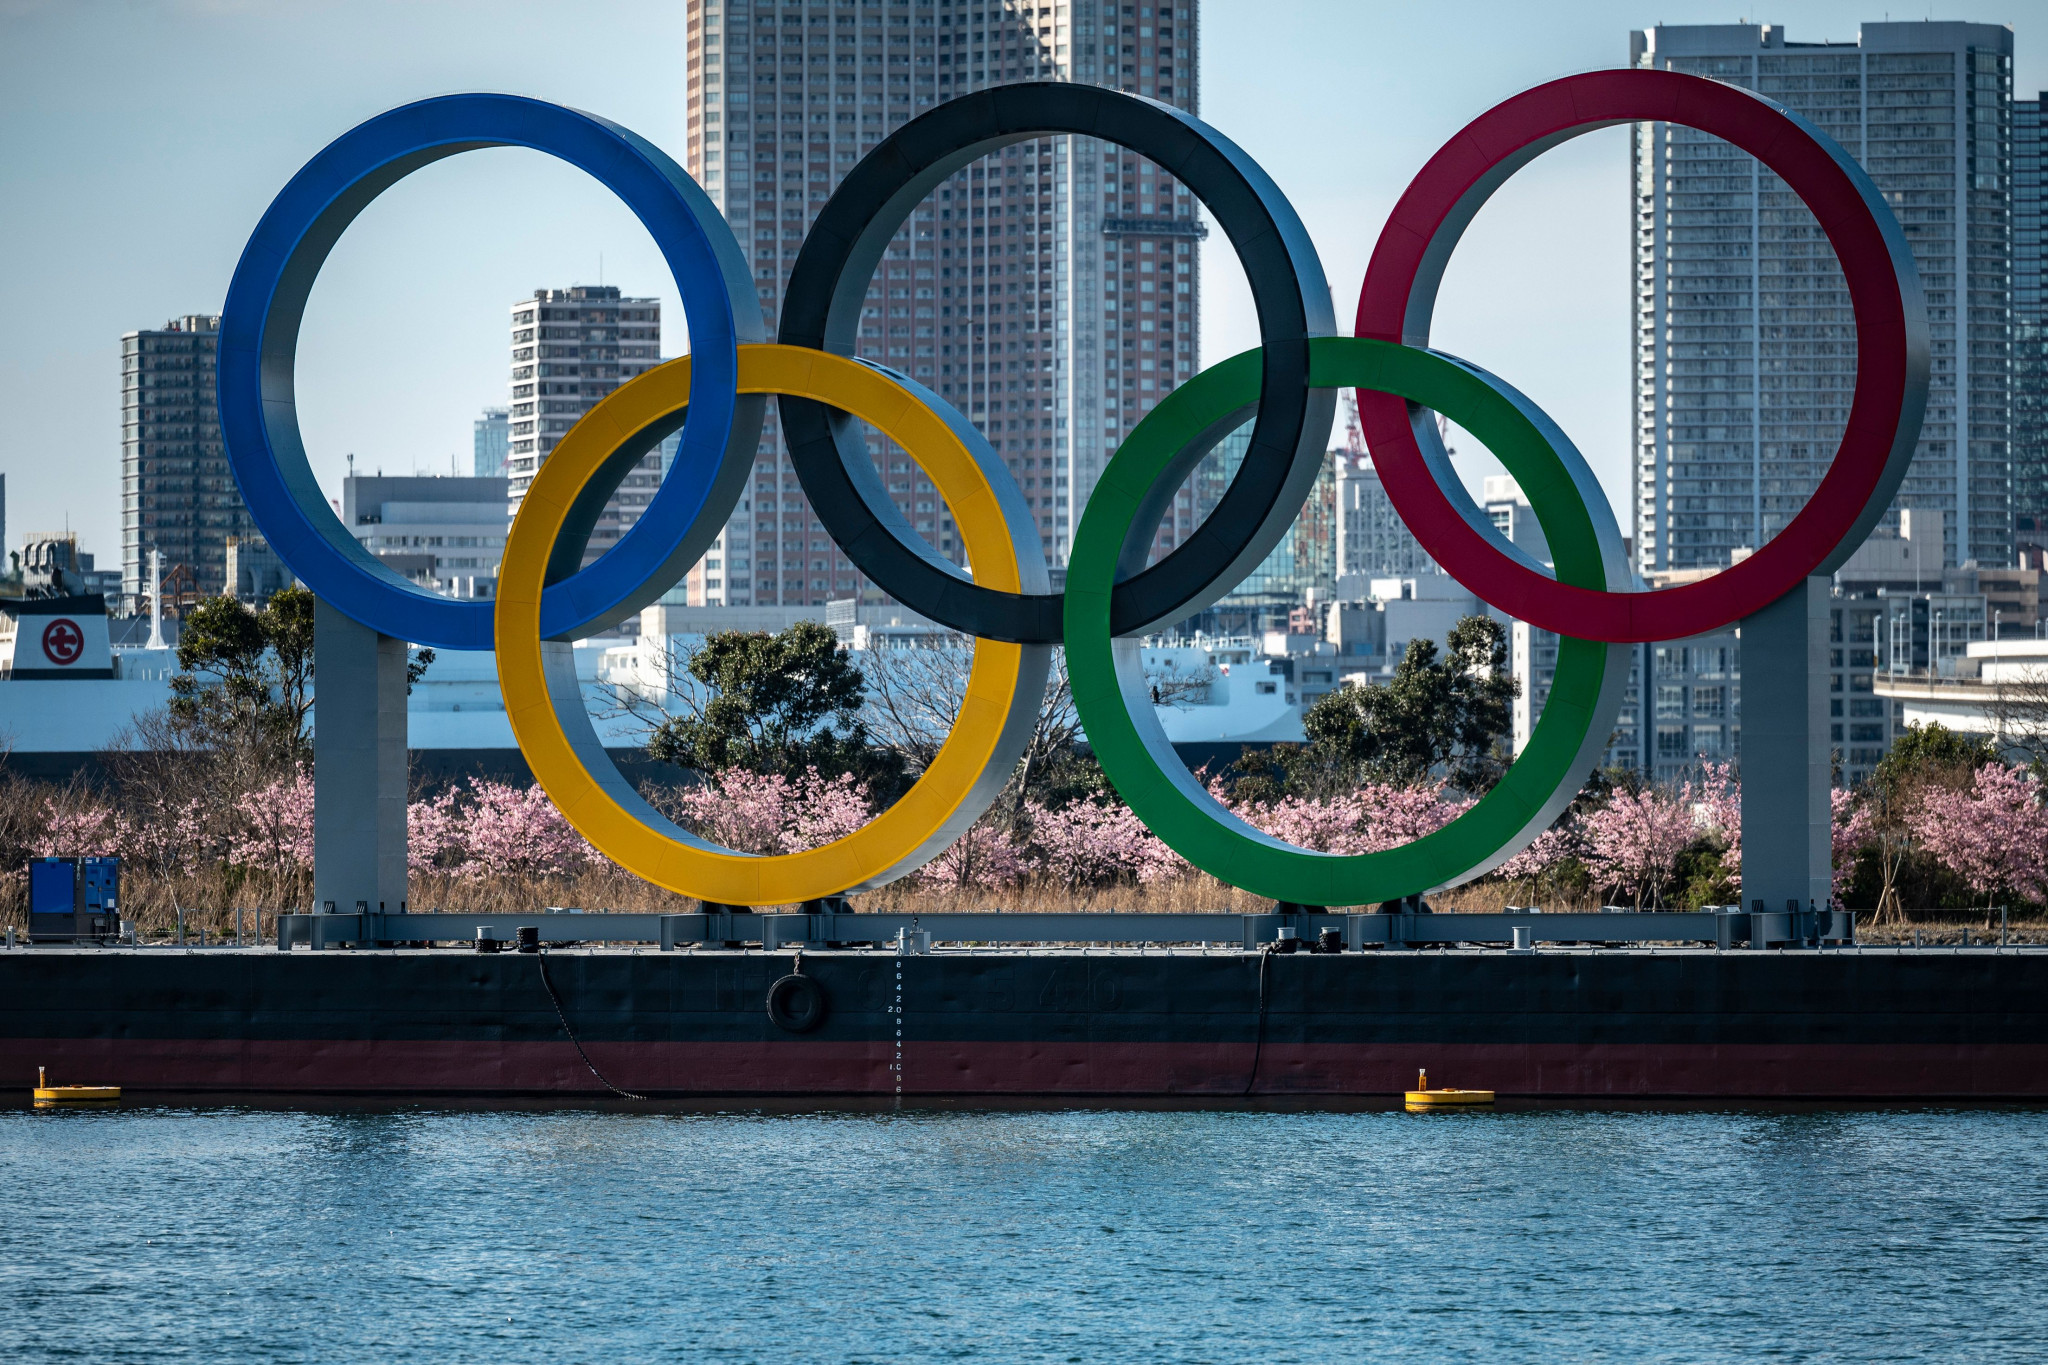 Athletes would reportedly be subject to similar measures to those expected at Tokyo 2020 ©Getty Images